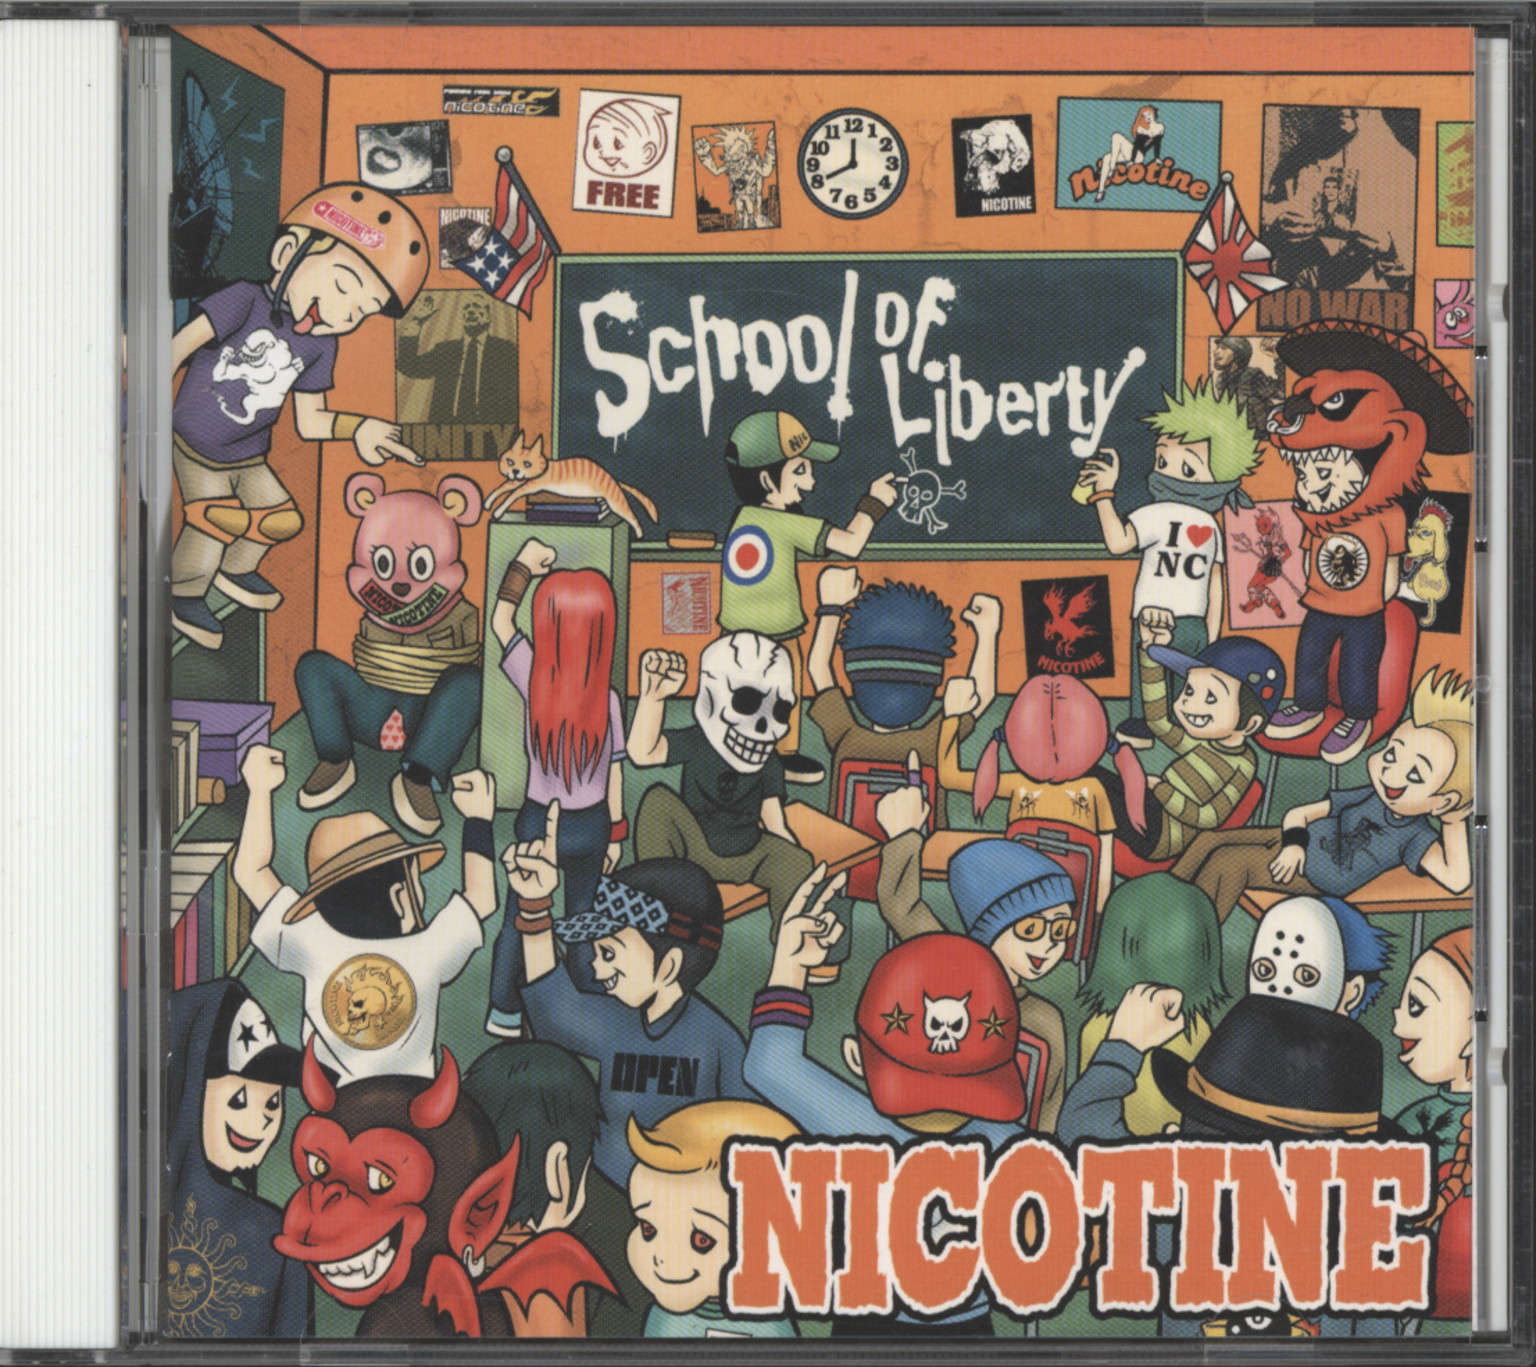 Nicotine: School Of Liberty, CD